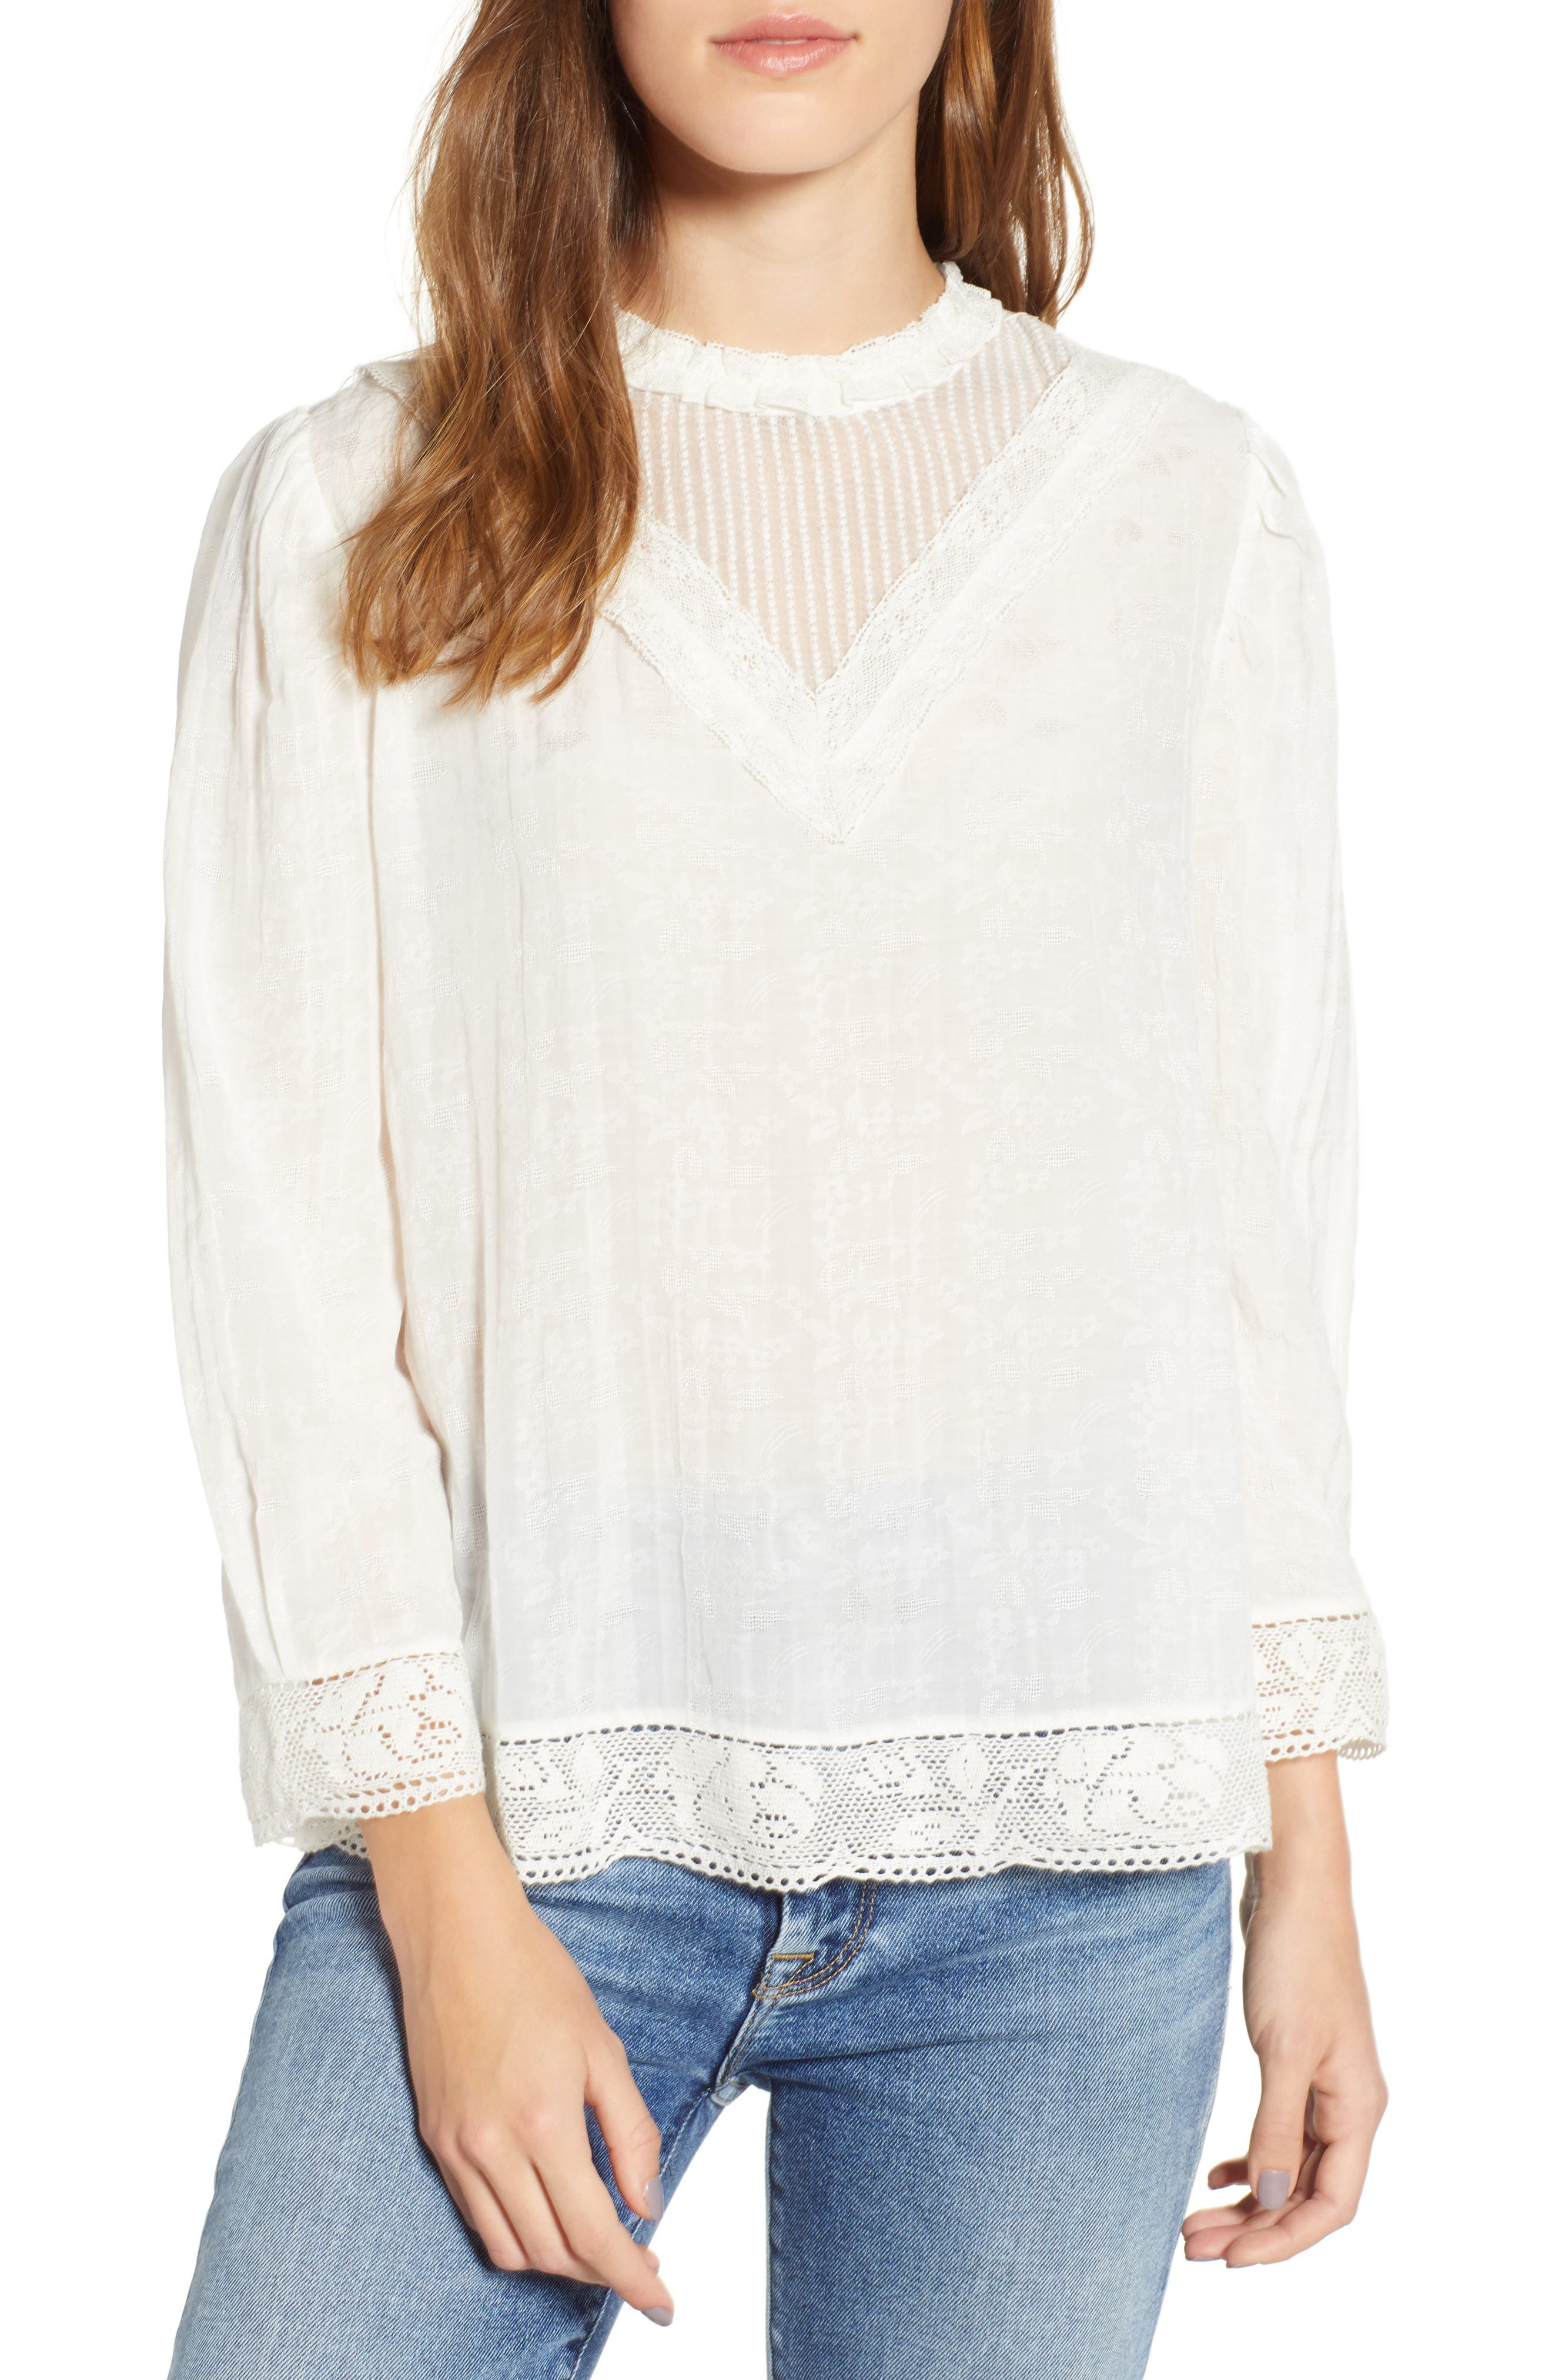 HINGE Lace Detail High Neck Top, Main, color, WHITE SNOW